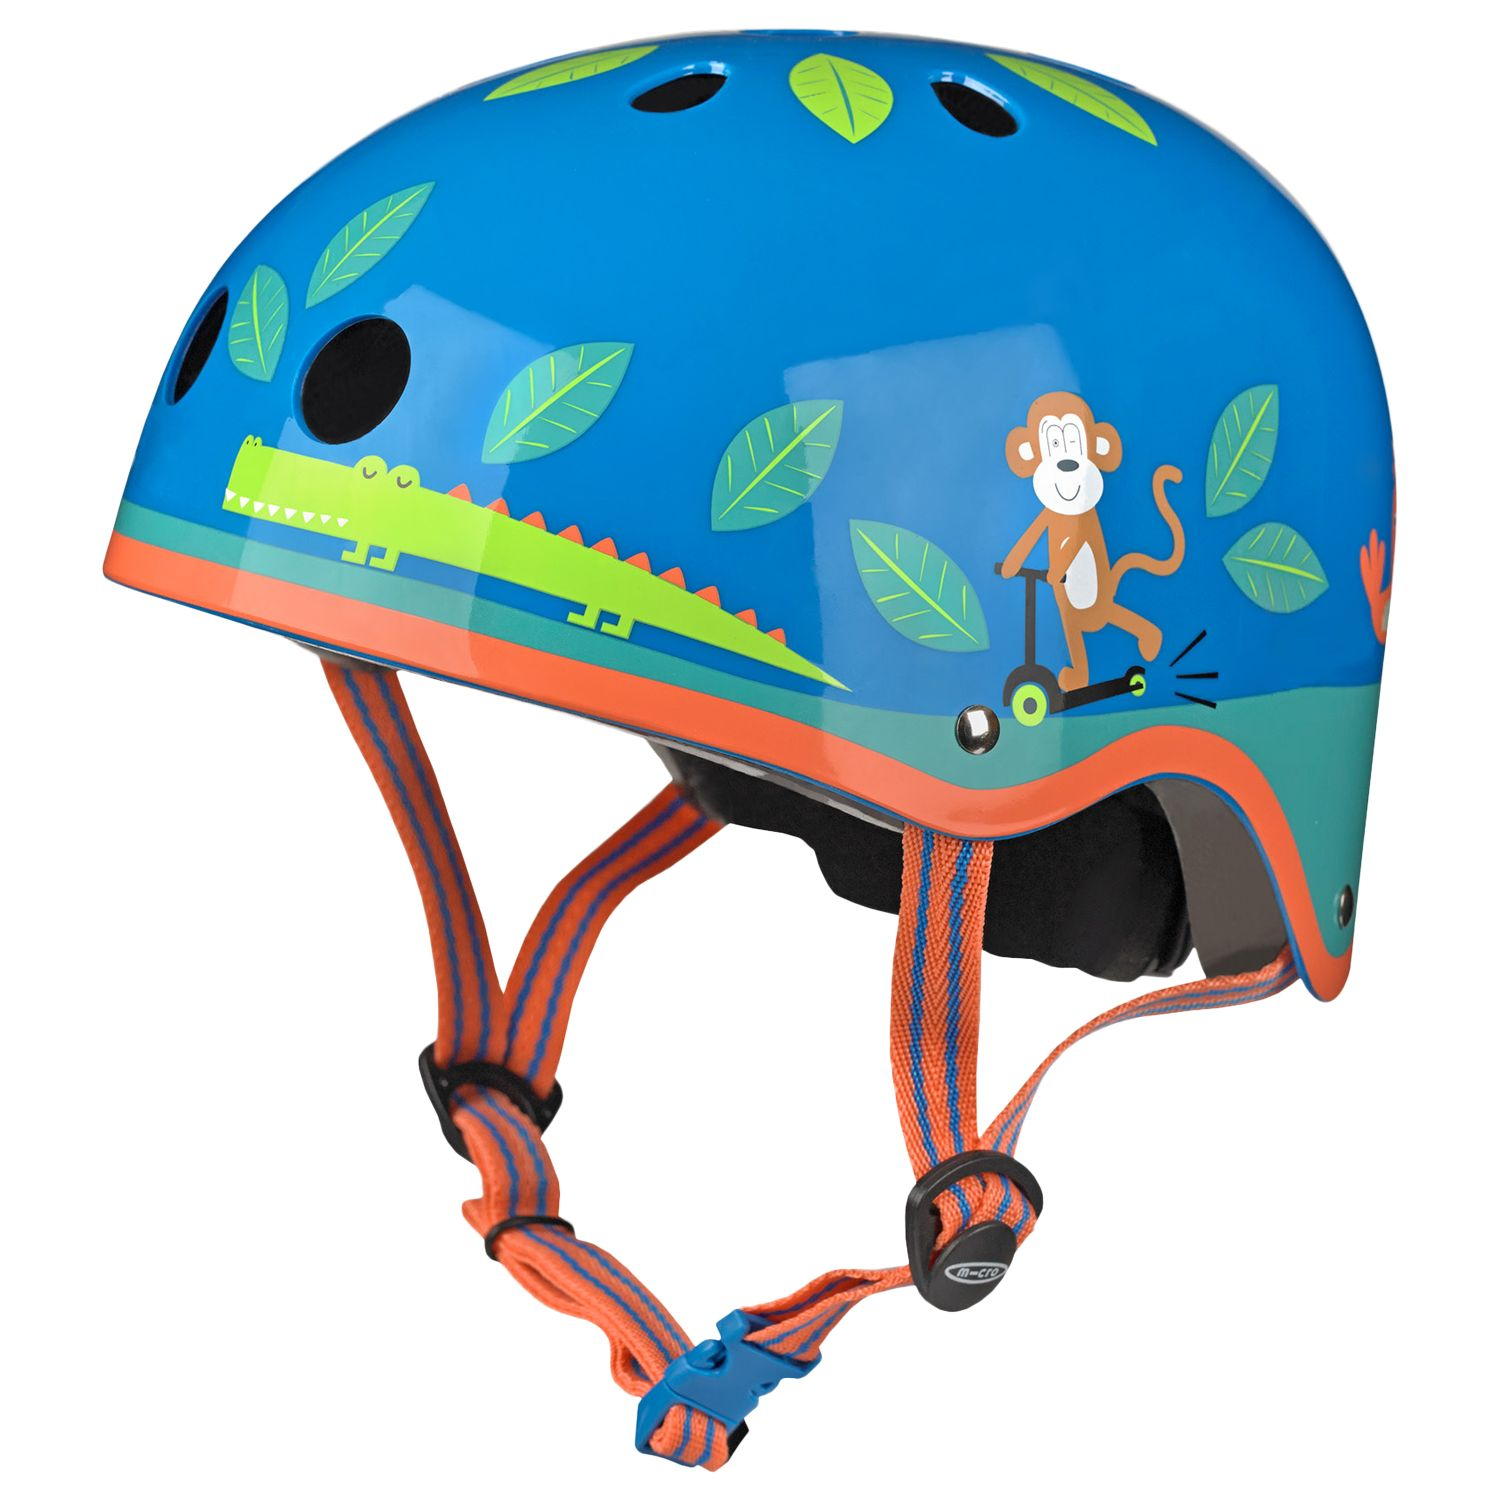 Micro Micro Scooter Wildlife Safety Helmet, Blue/Multi, Medium